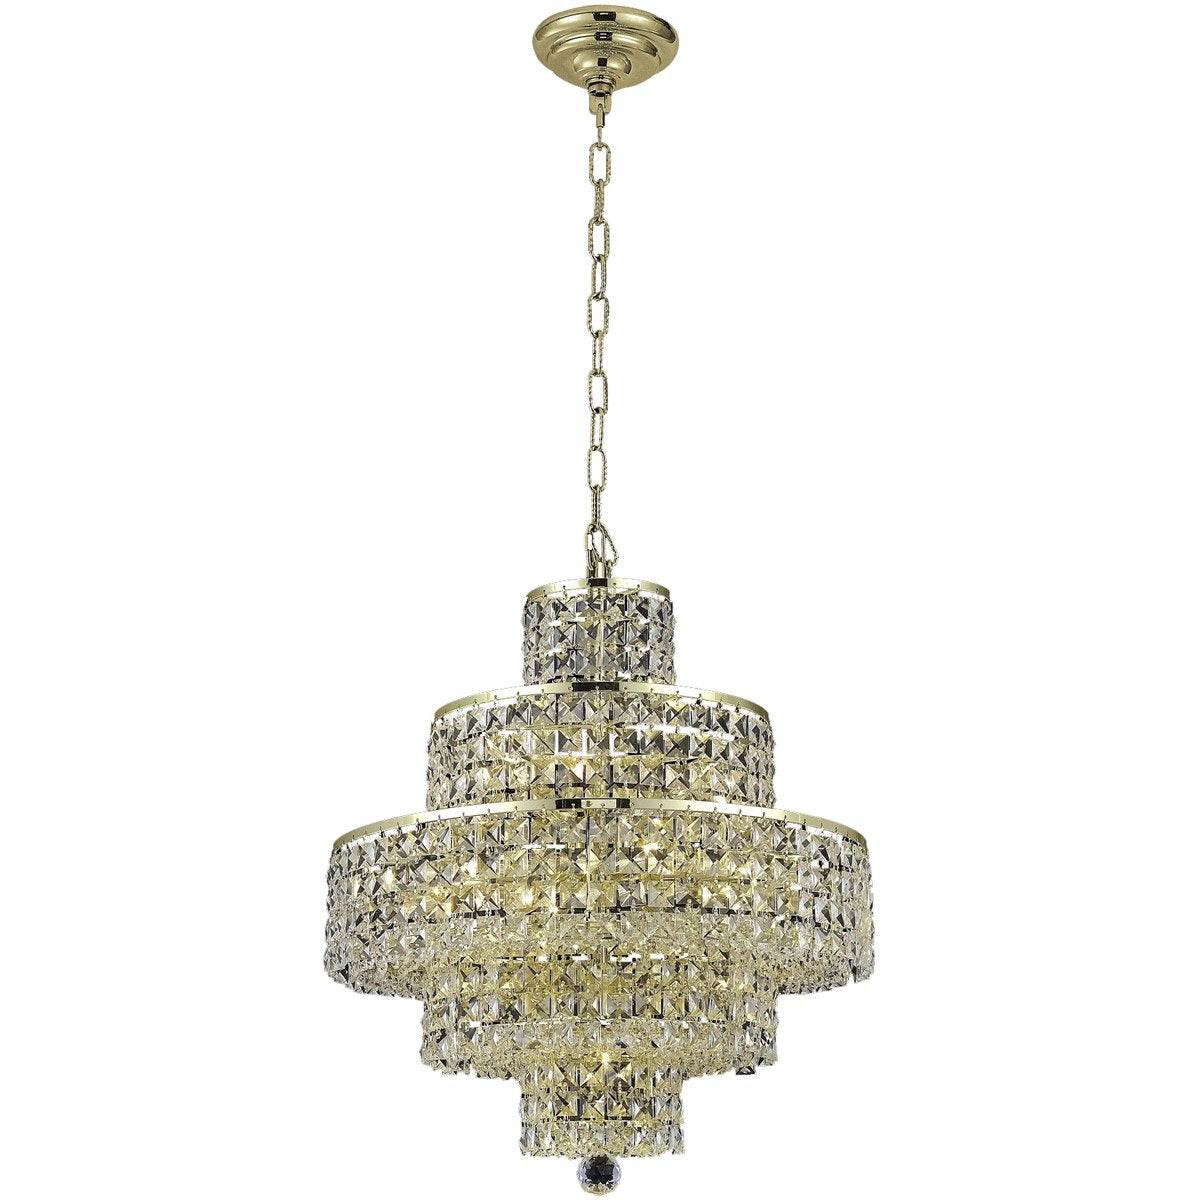 Maxime 20 Crystal Chandelier With 13 Lights - Gold Finish And Clear / Swarovski Elements Crystal Chandelier